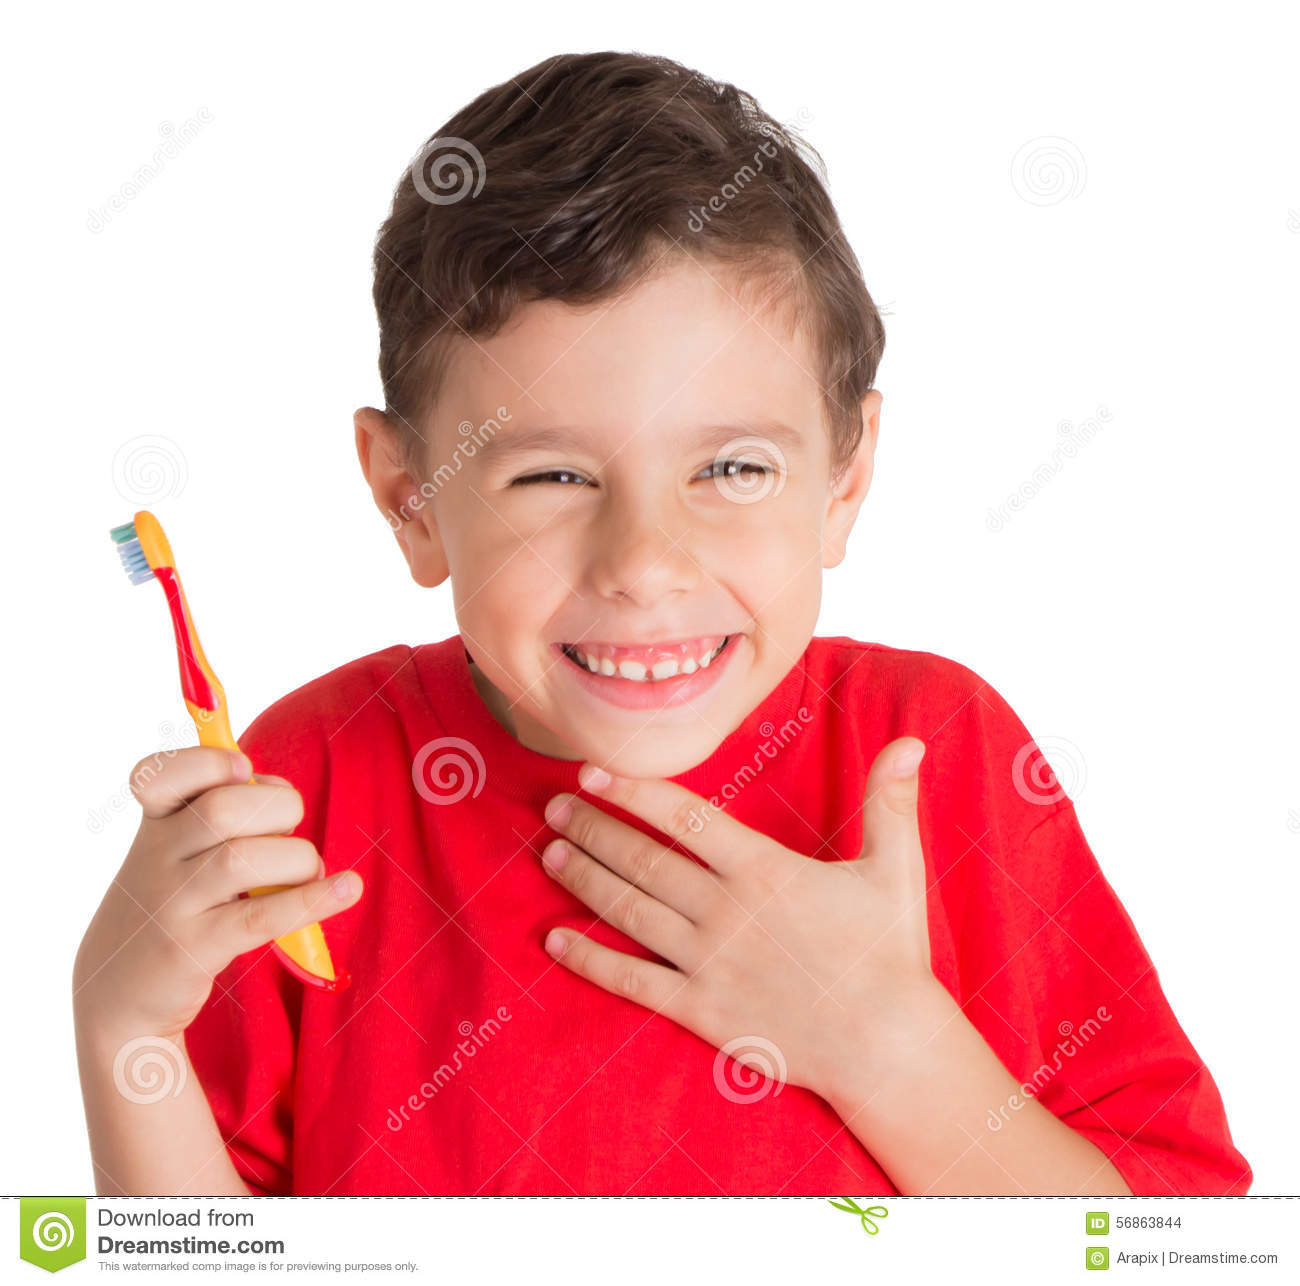 Young Boy holding Teeth Brush happily